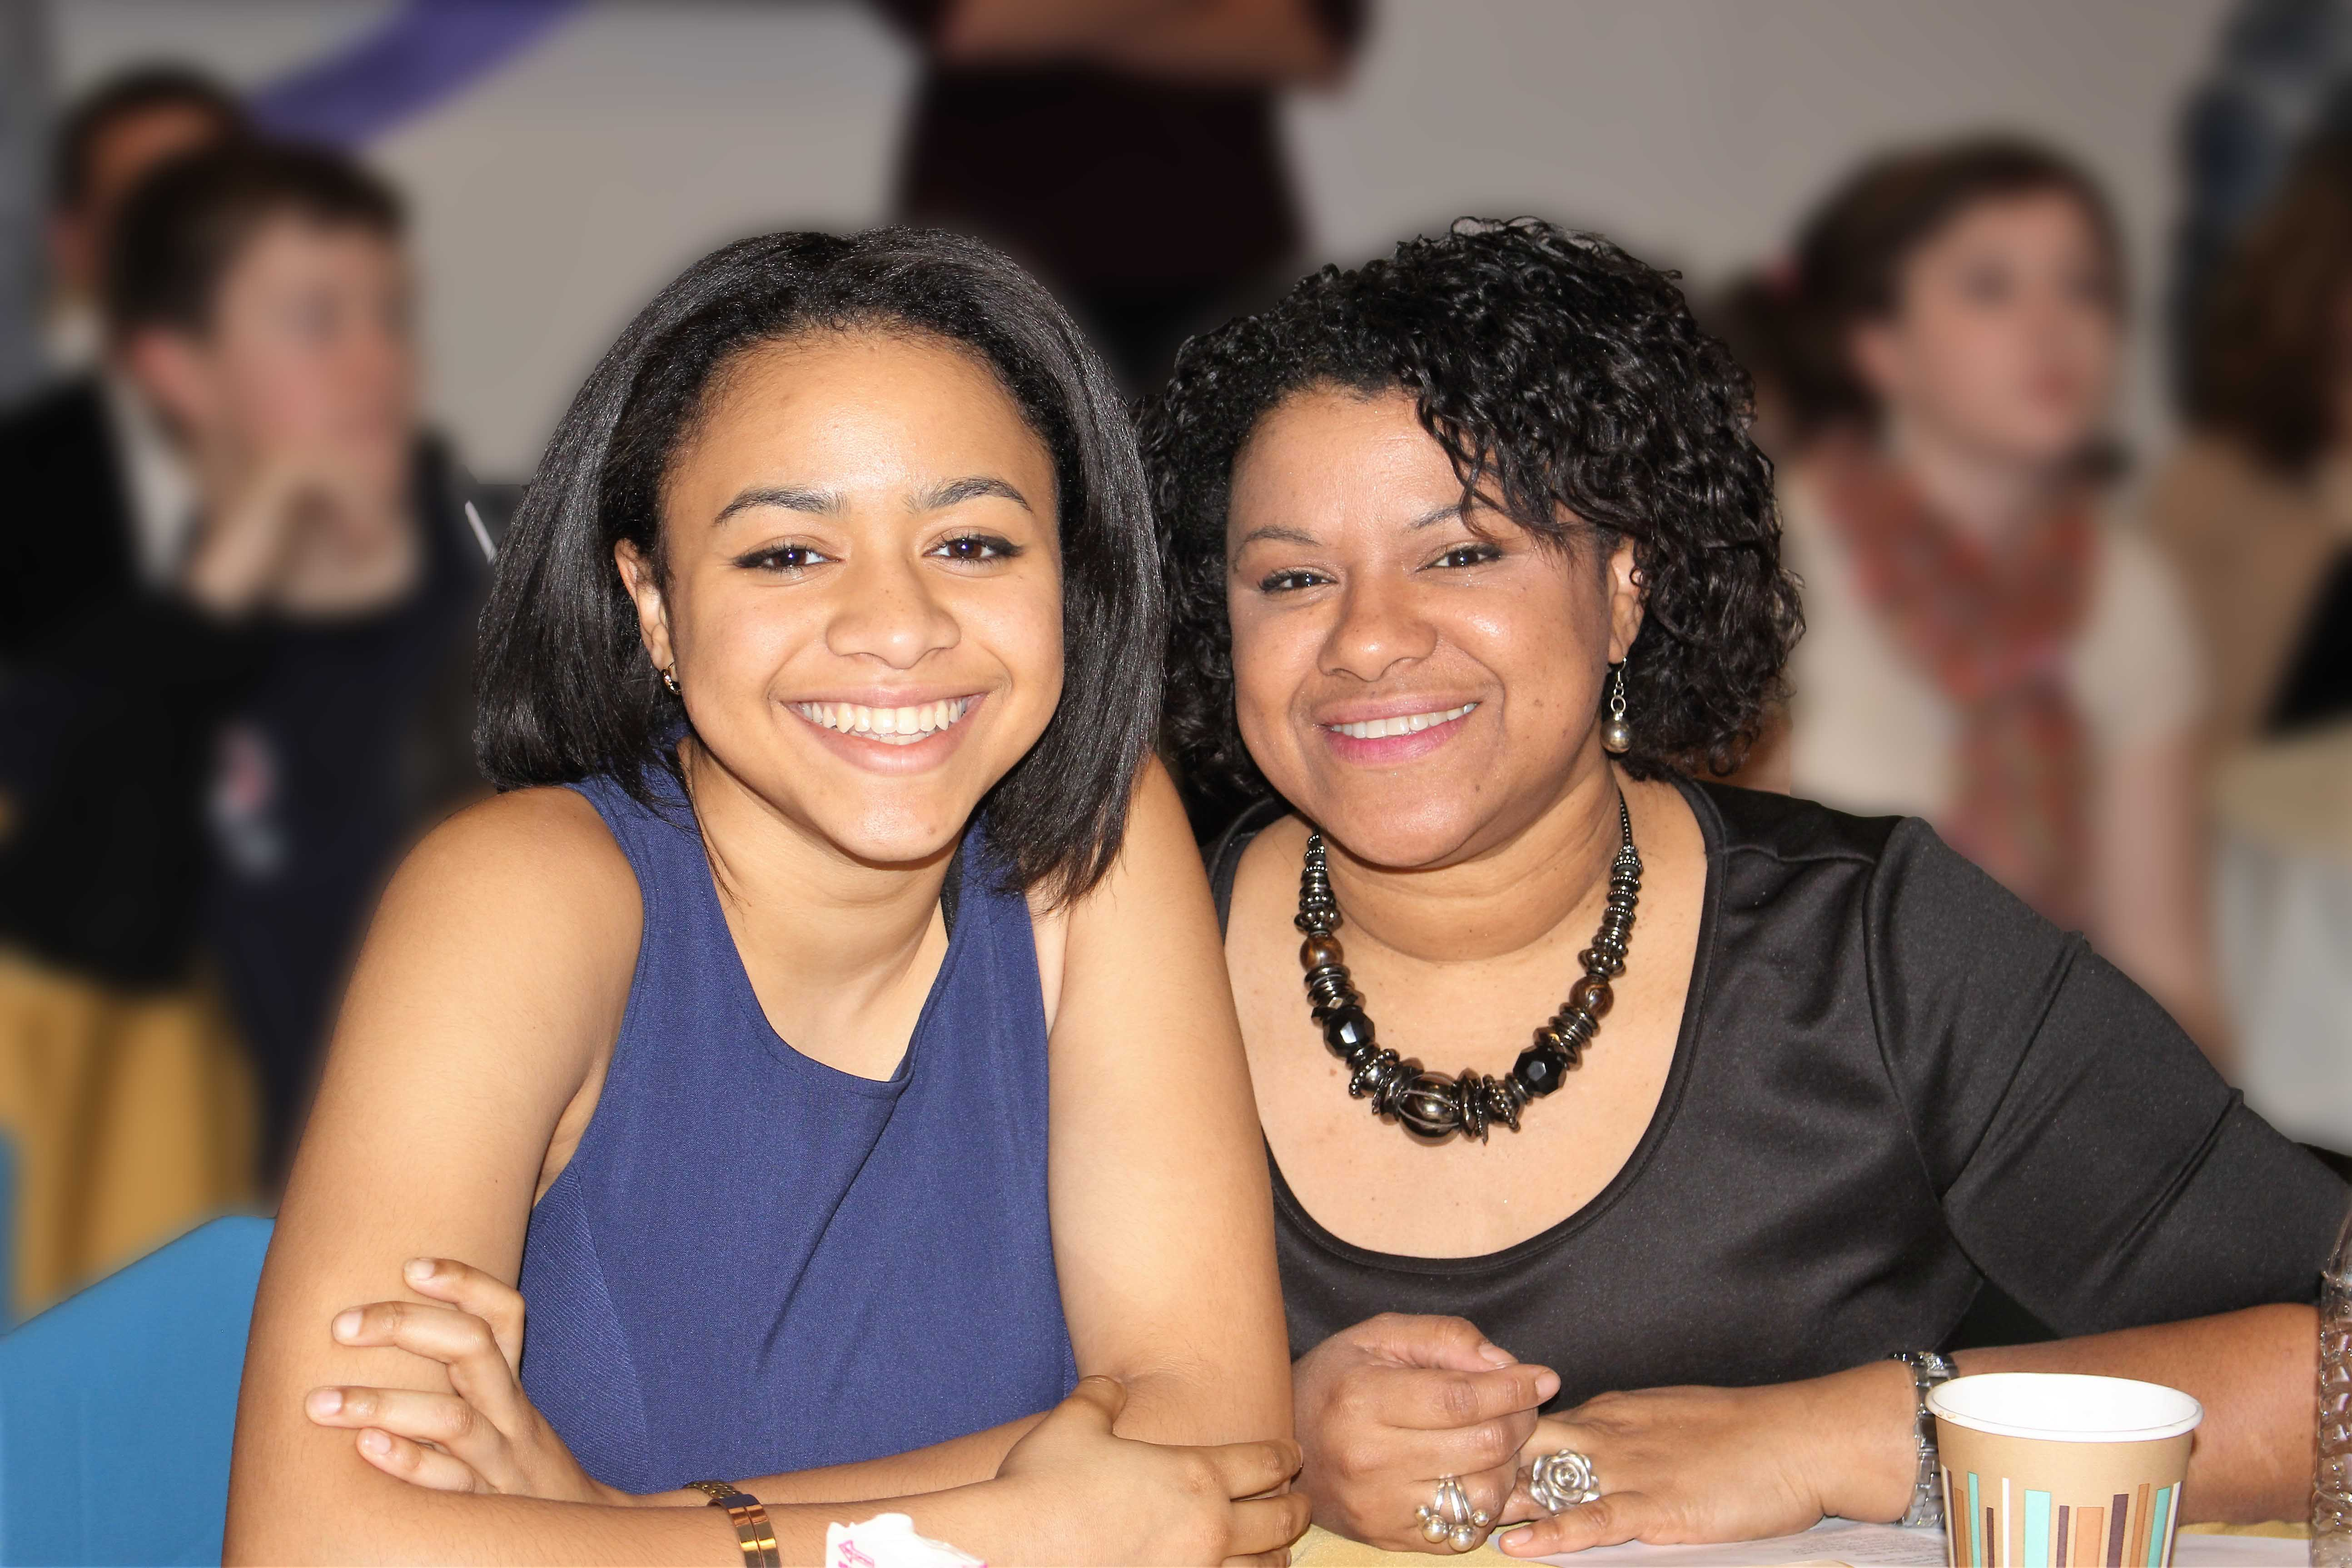 An HPS student and her mother, both smiling, at a school event.